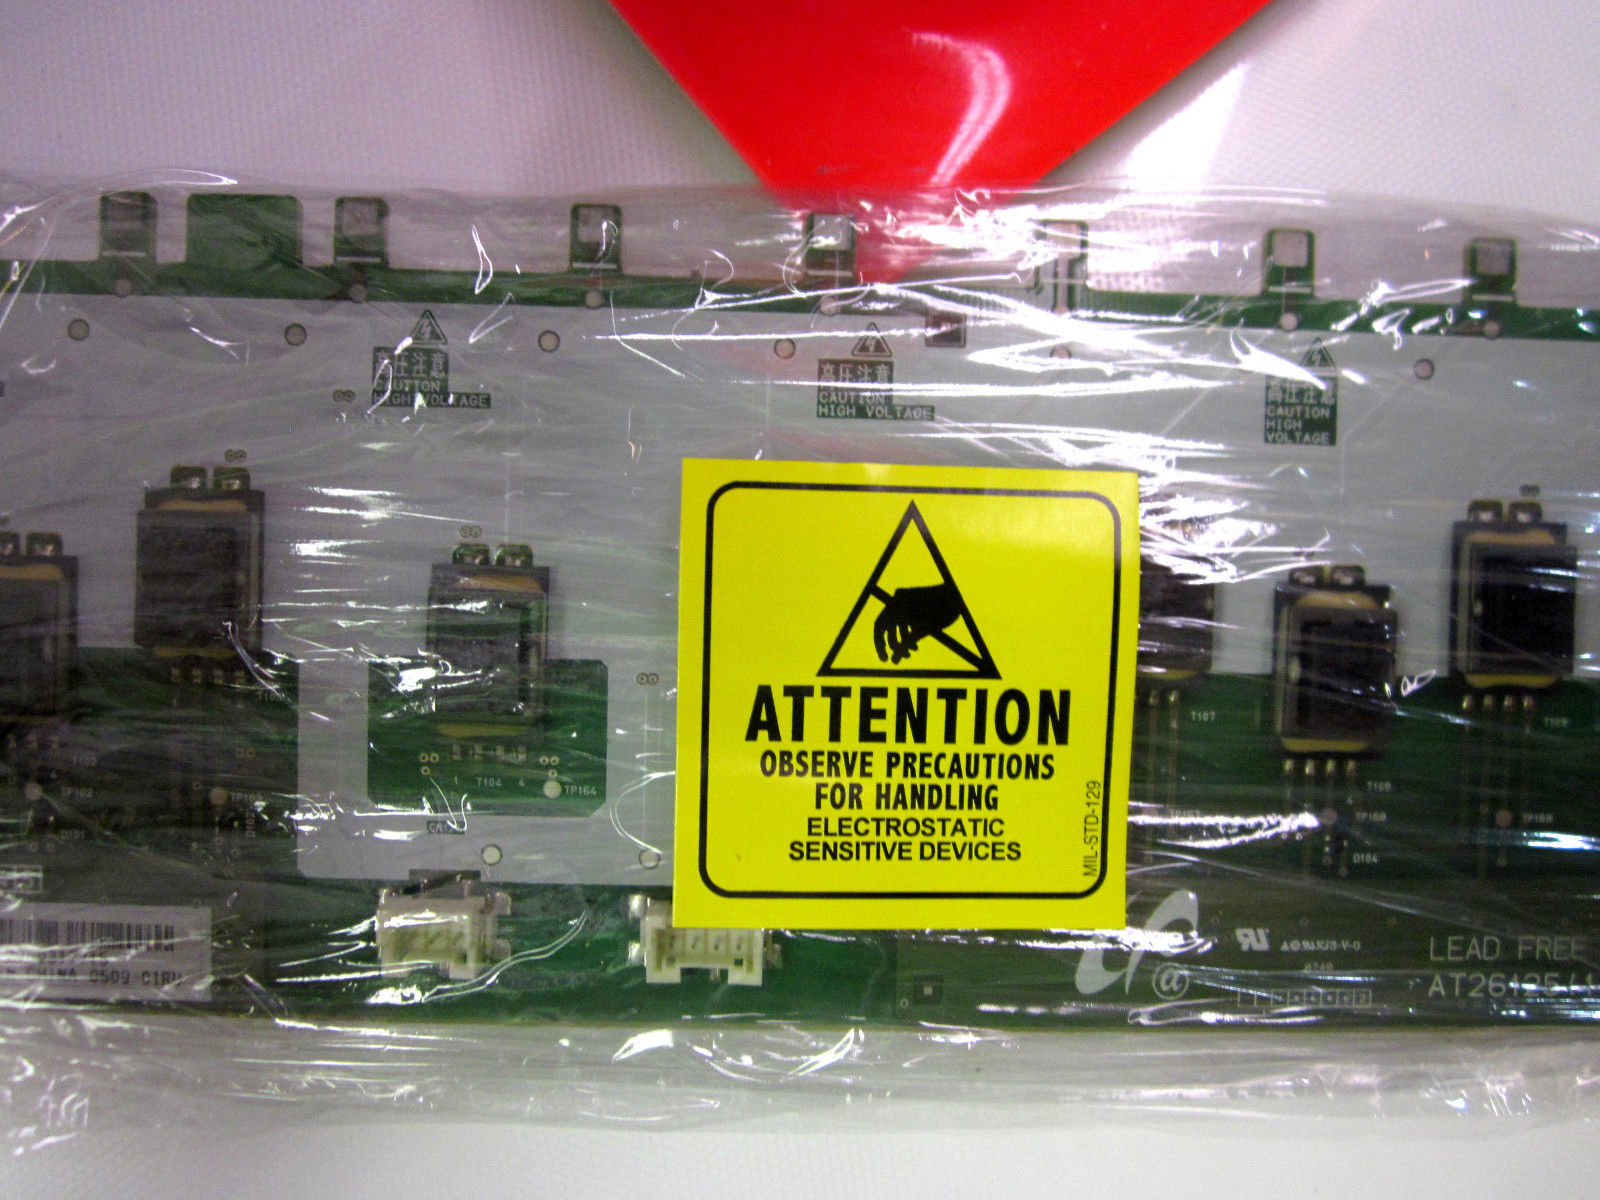 Samsung LJ97-01476A (SSB520HA24-RU) Backlight Inverter Board for Sony [See List] - $28.00